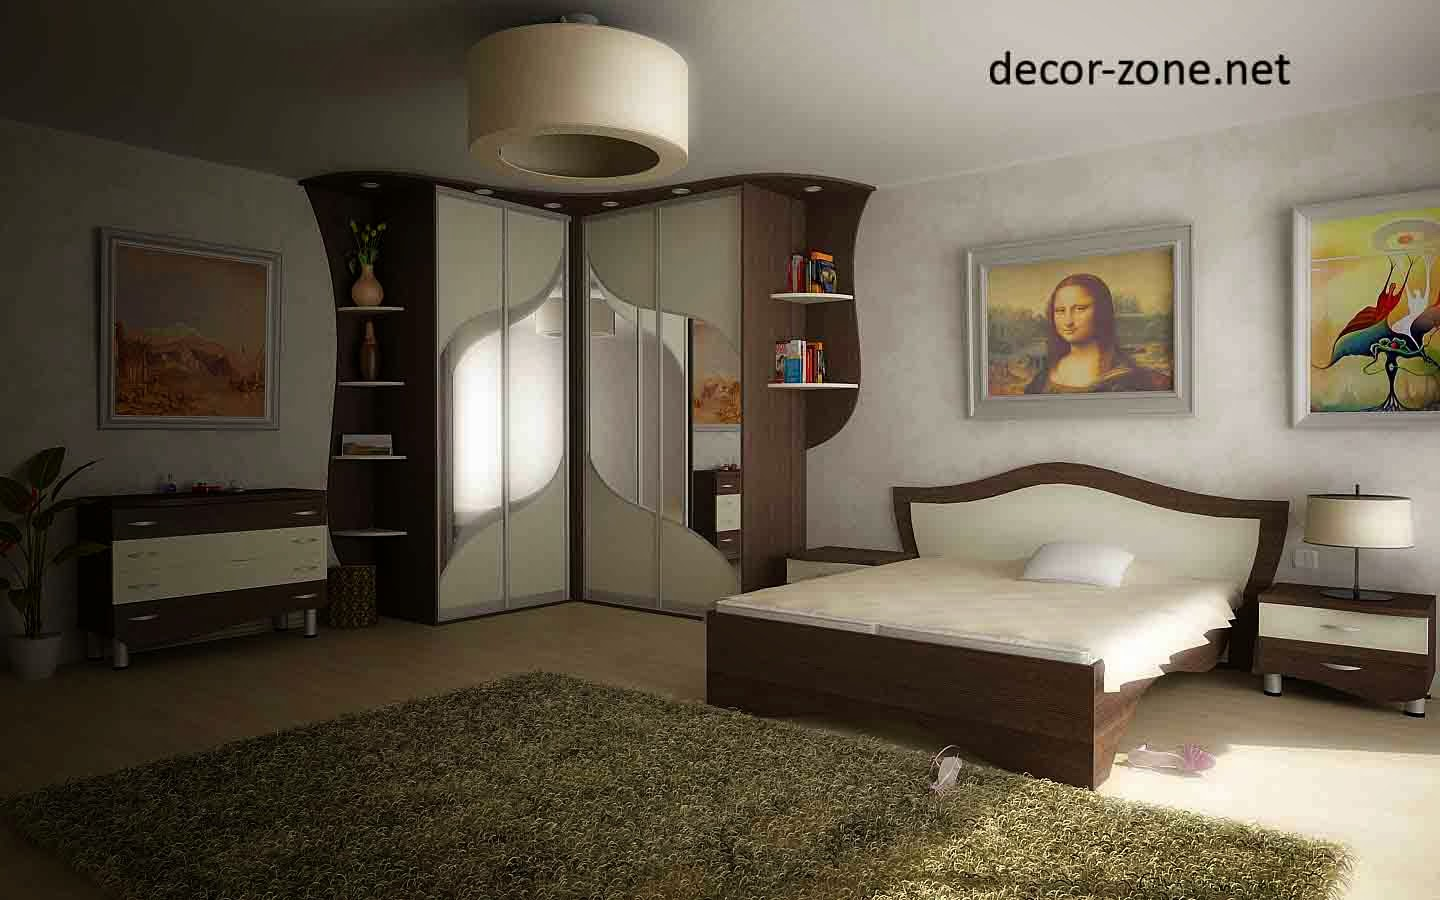 master bedroom furniture, bedroom corner closet, shelving